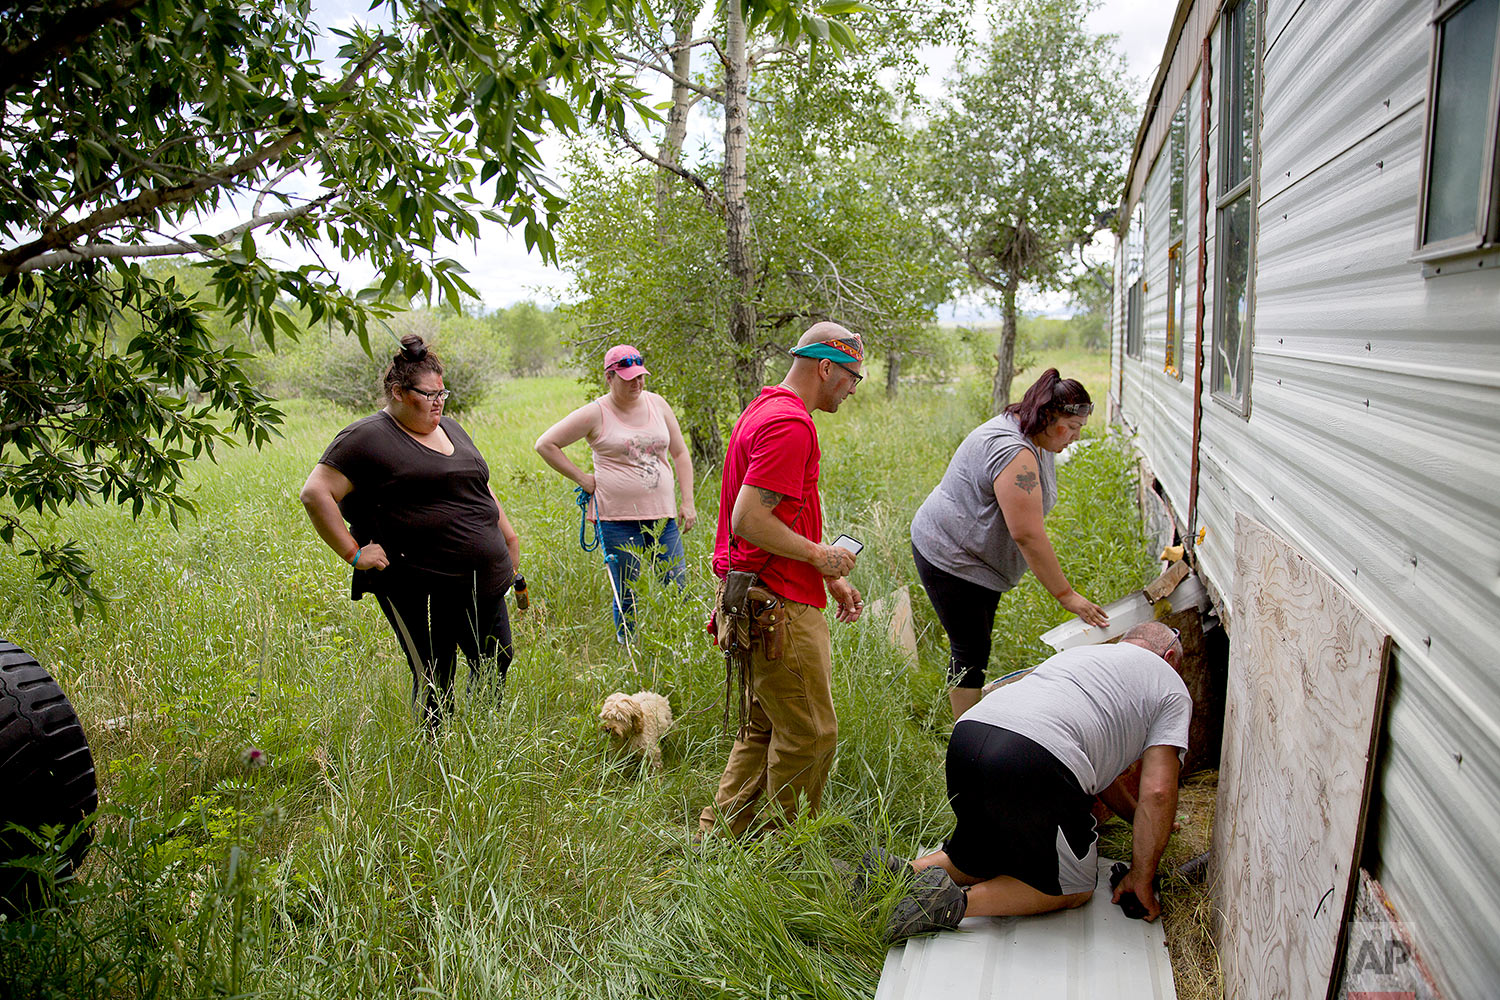 Kimberly Loring, from left, Staci Salois, Randy Ortiz, Lissa Loring and George A. Hall, look for clues under a trailer during a search in Valier, Mont., for the Lorings' sister and cousin, Ashley HeavyRunner Loring,July 11, 2018. (AP Photo/David Goldman)